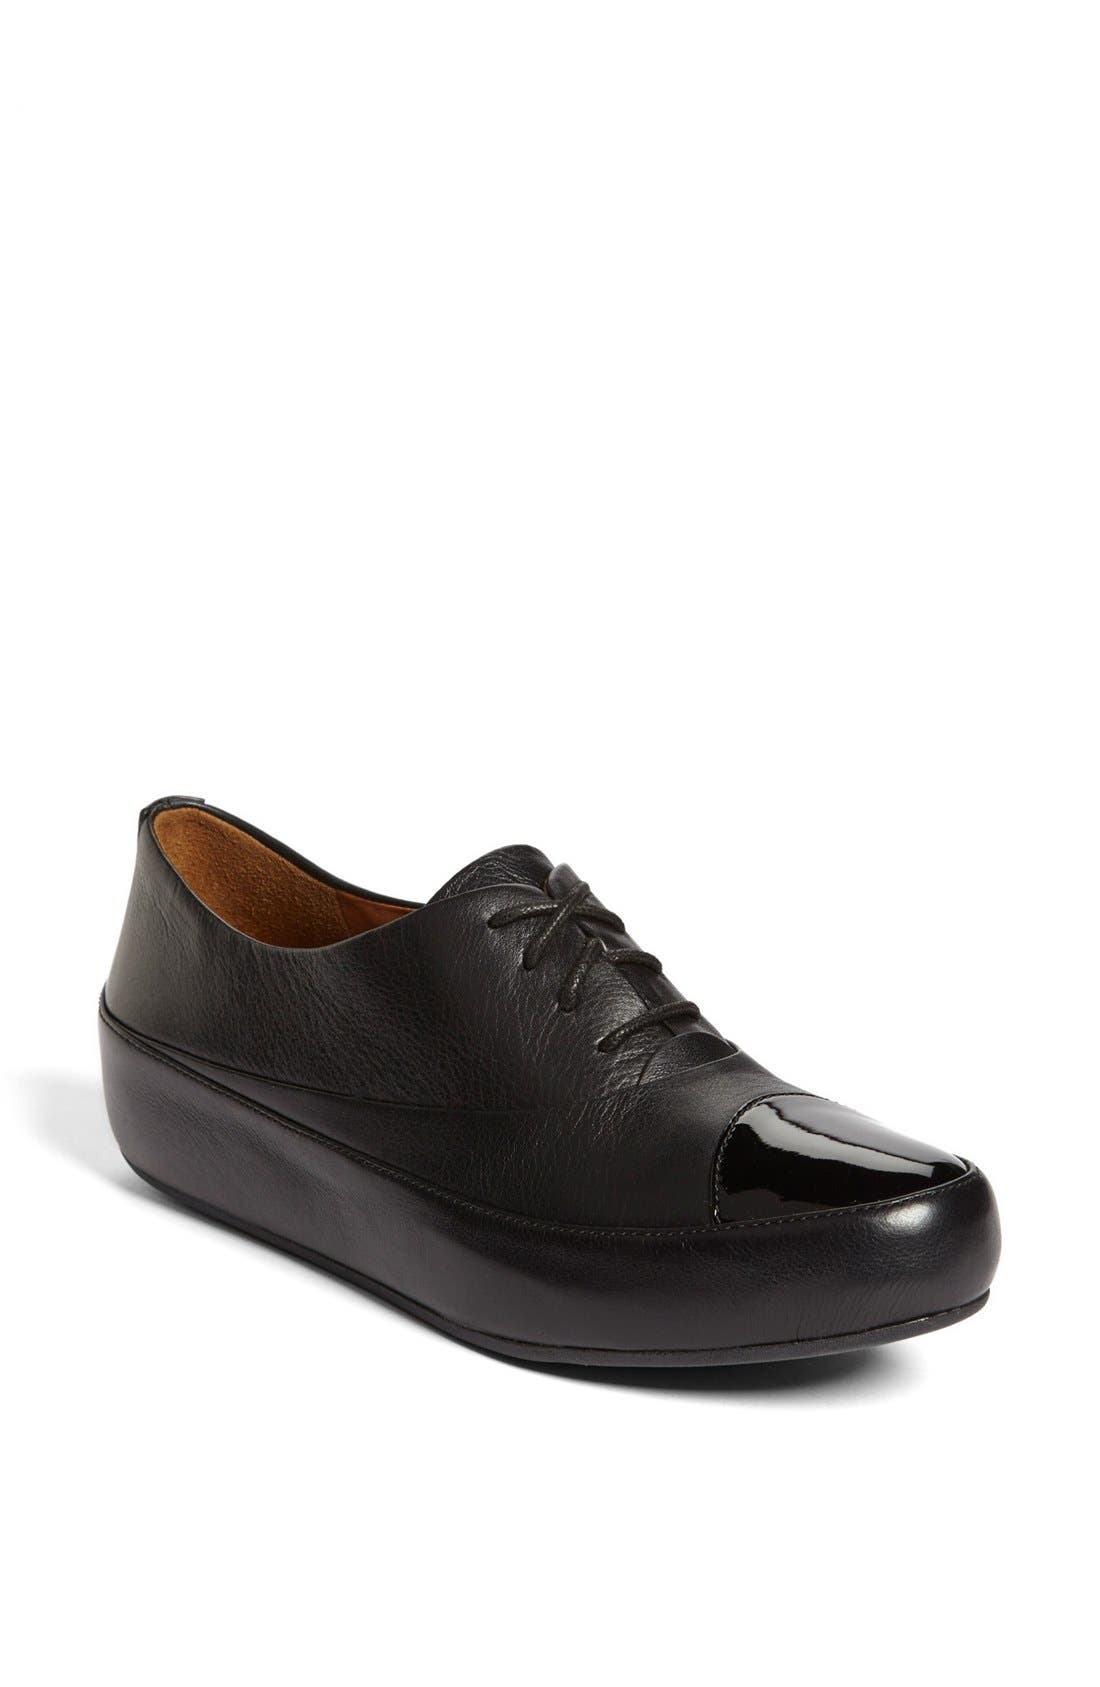 Alternate Image 1 Selected - FitFlop 'Dué™' Oxford